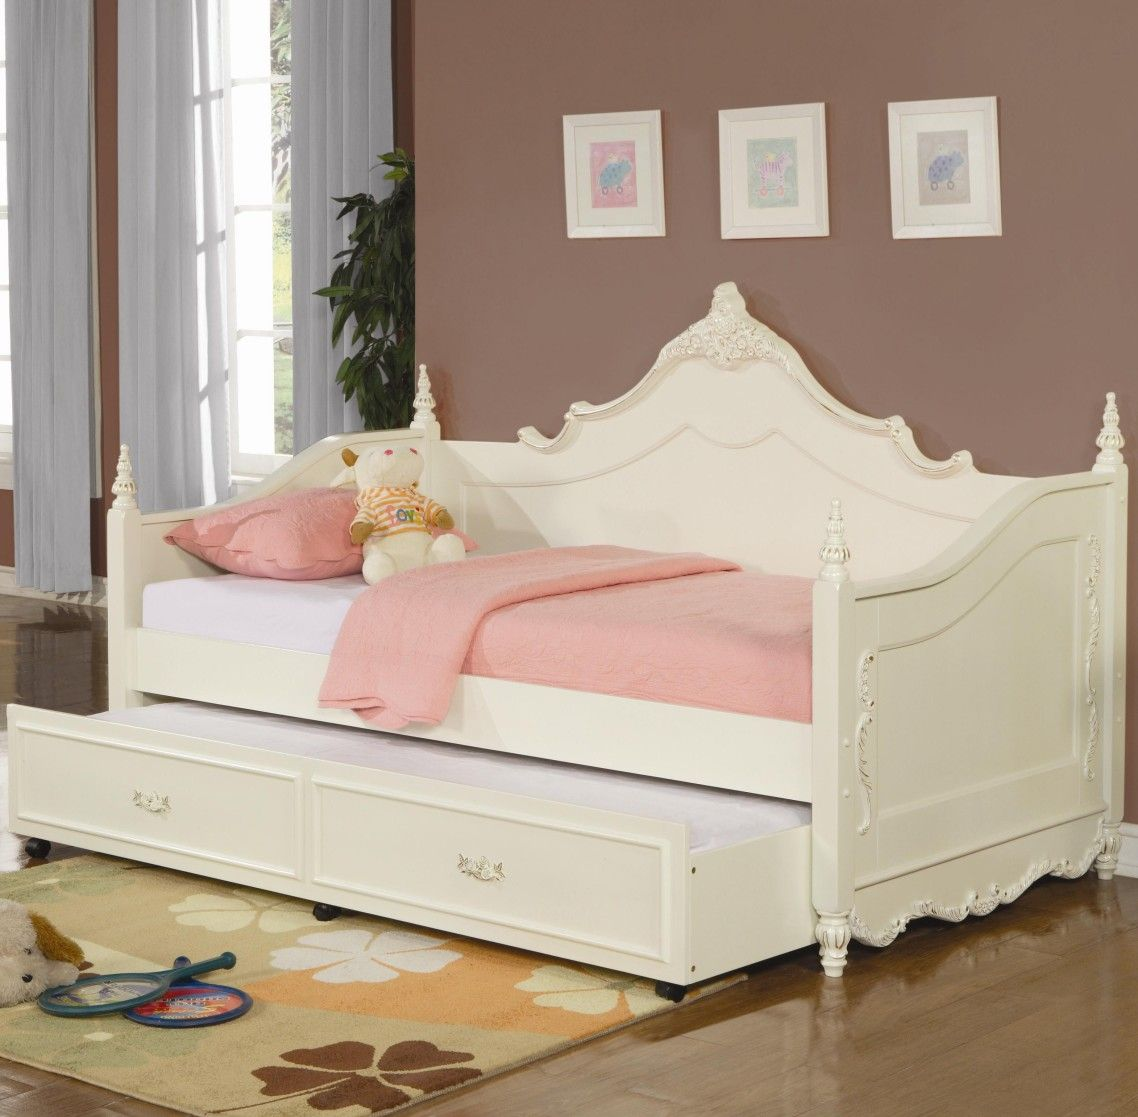 Daybed ideas bedroom - Single White Wooden Bed Wonderful Eye Catching Wooden Daybeds Uk Broken White Also Slide Large Drawers